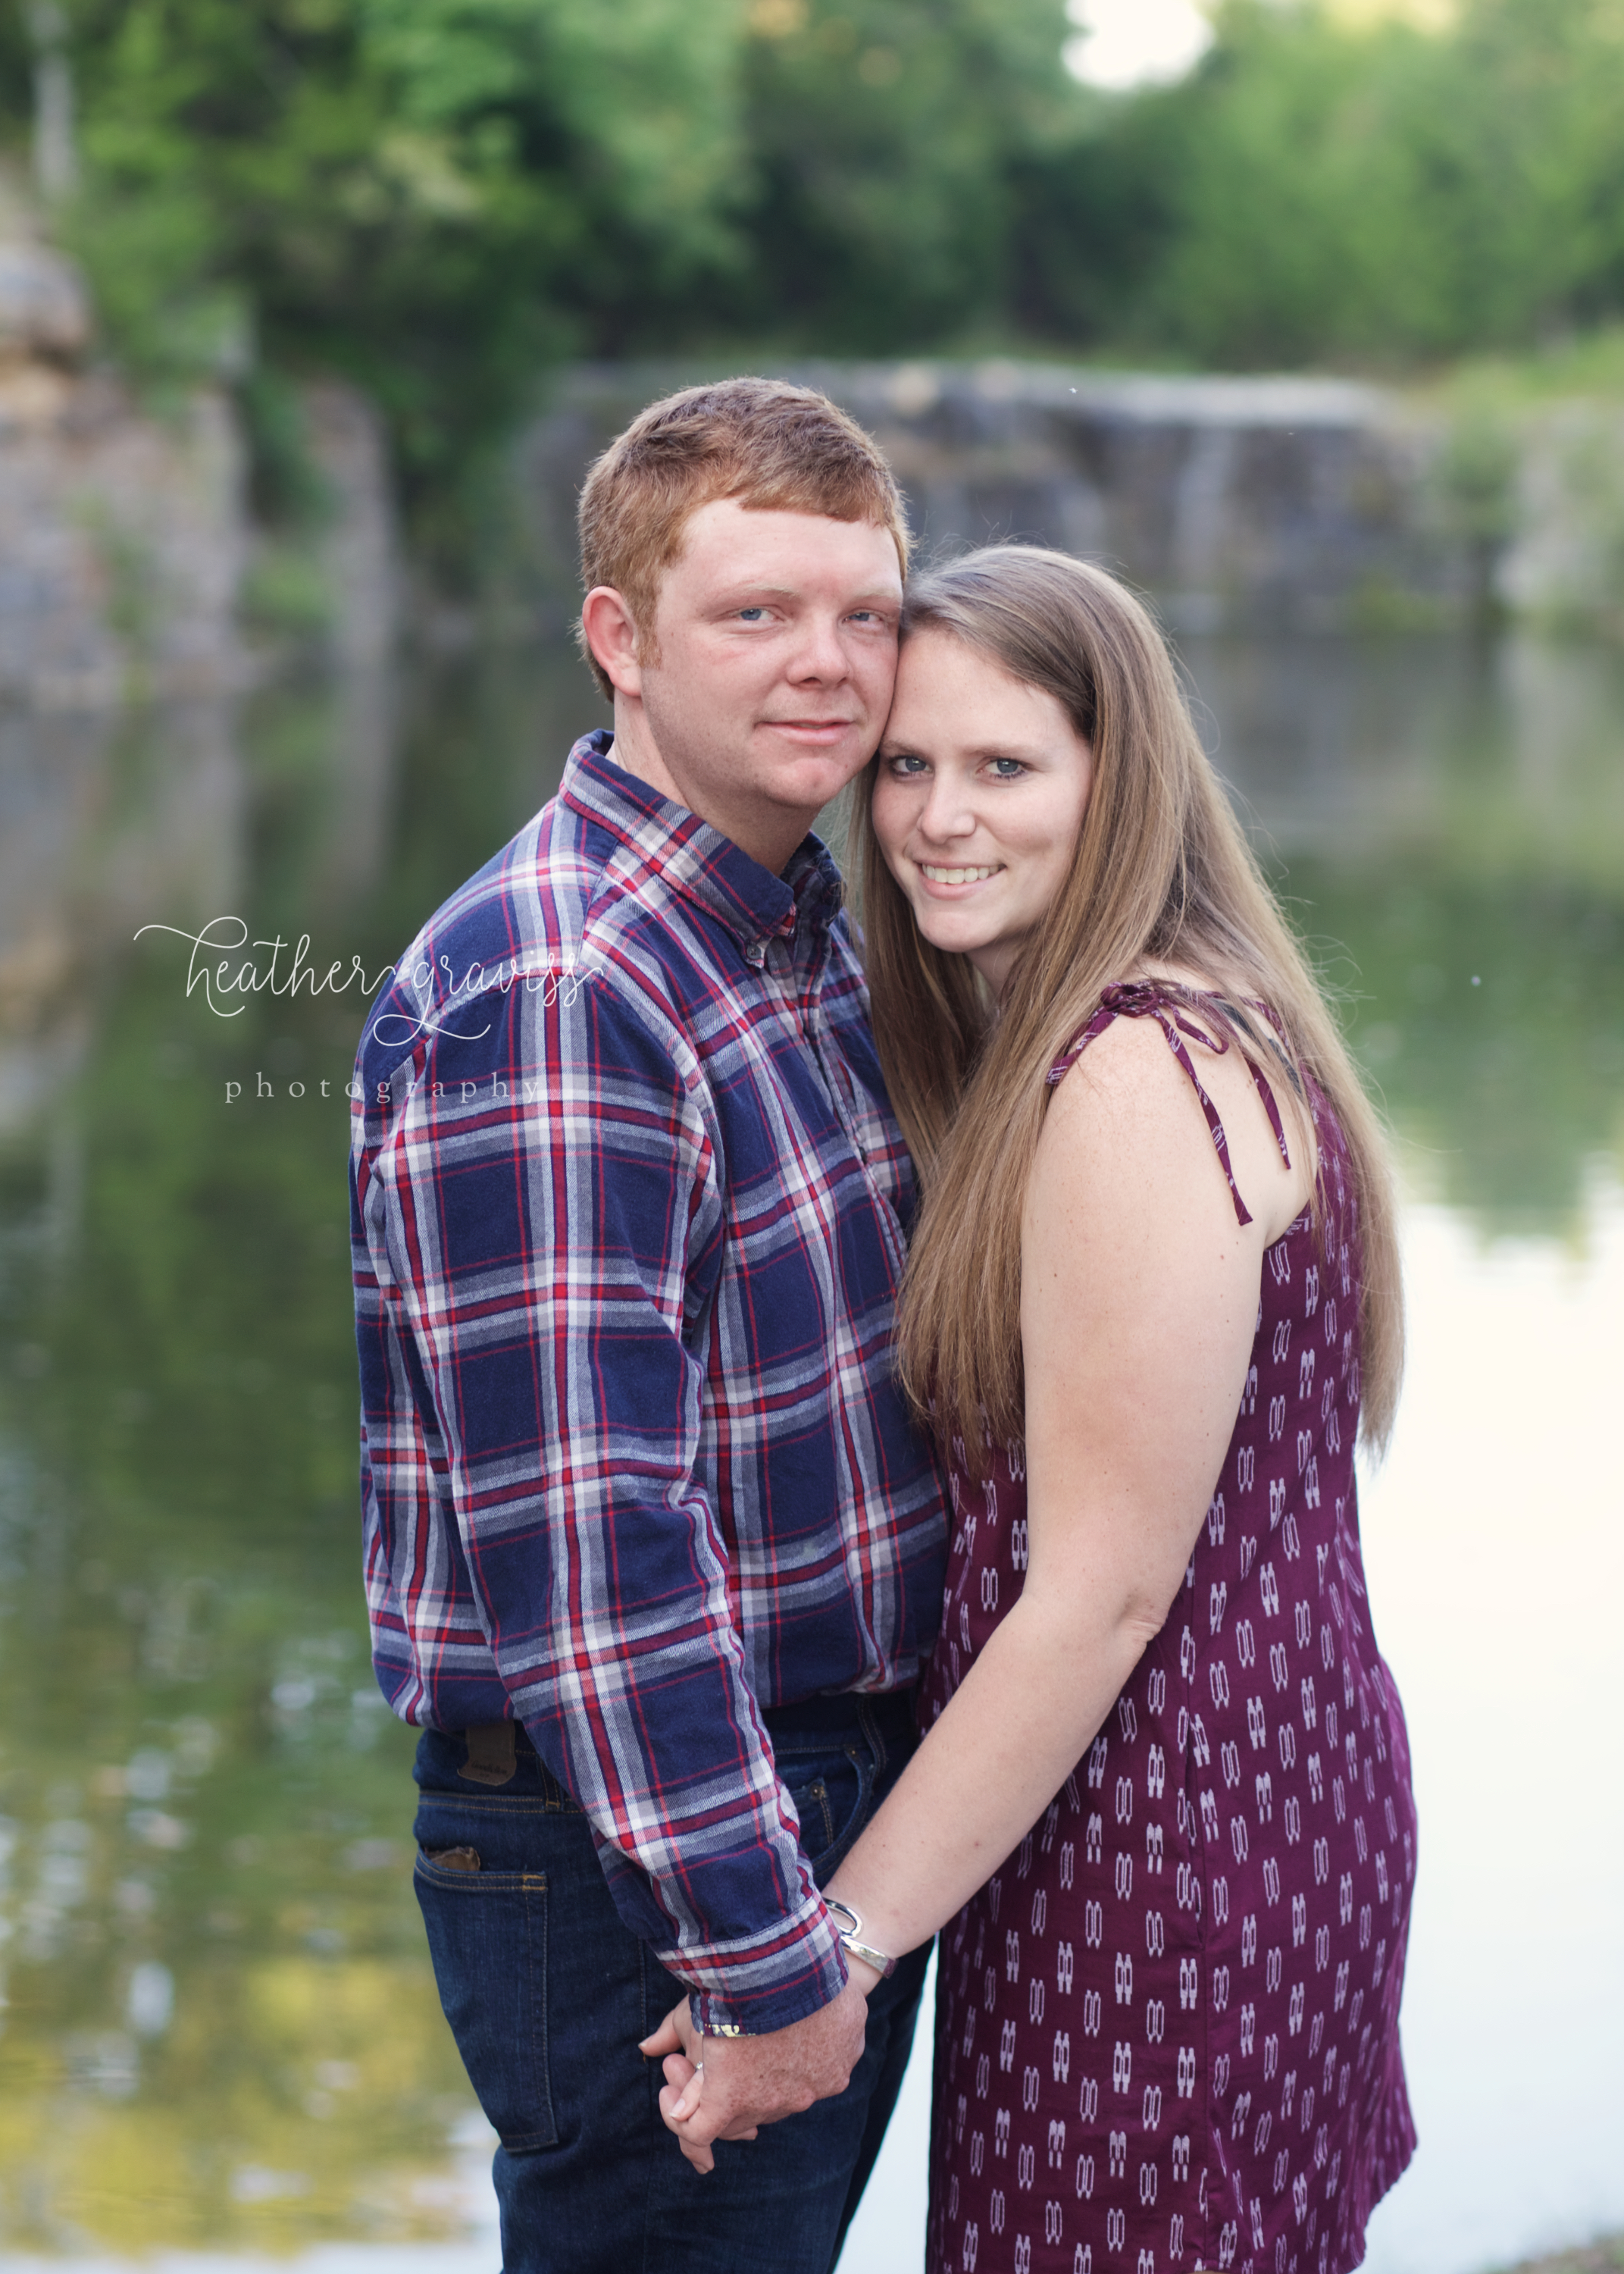 nashville middle tn engagement photographer 273.jpg